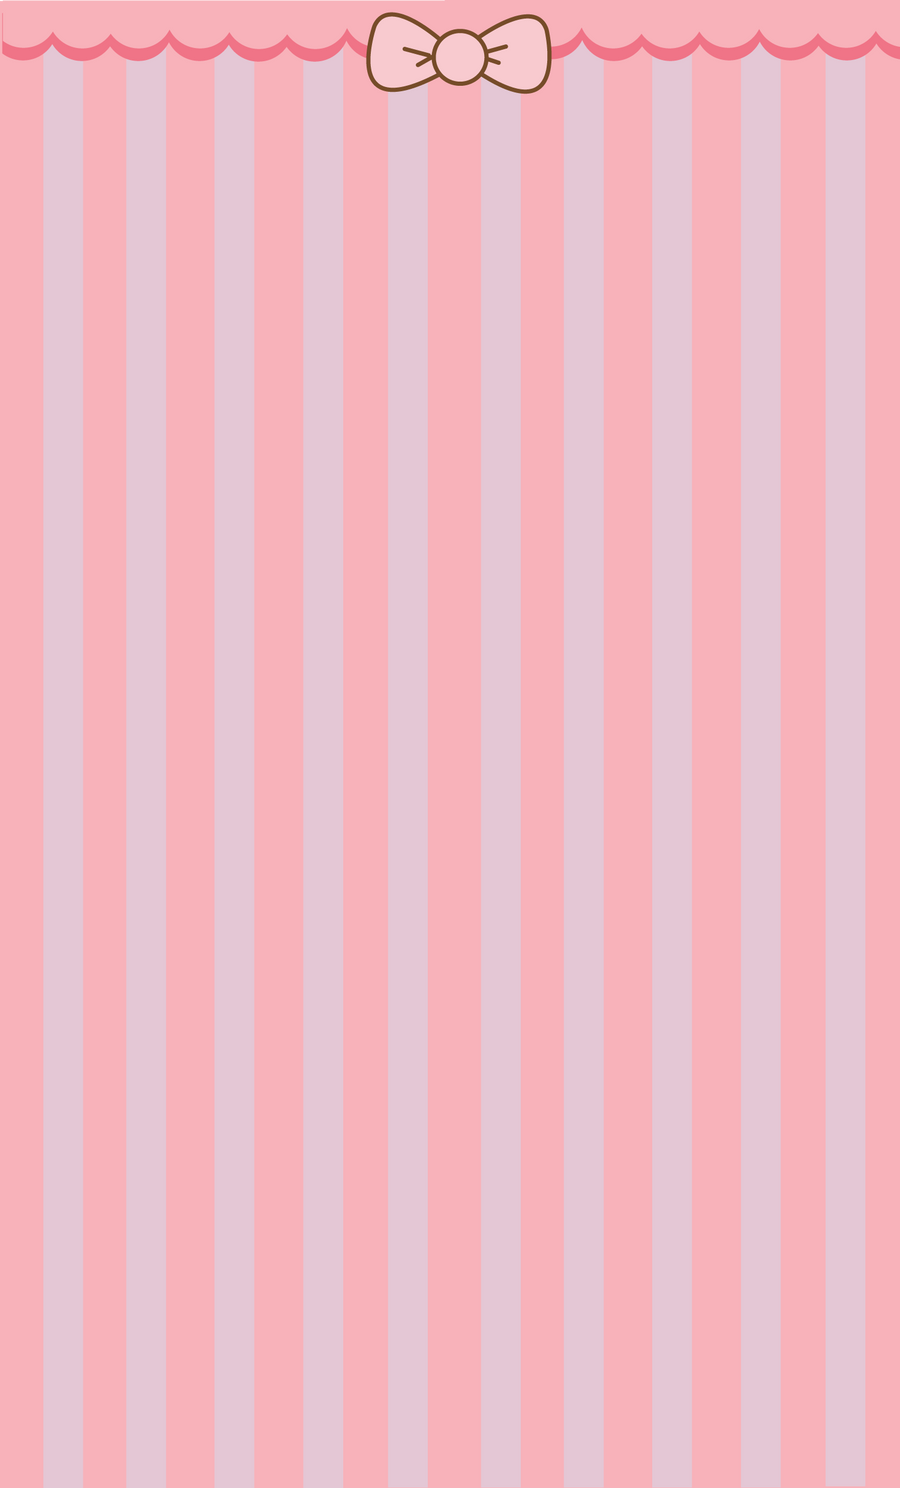 red bow background tumblr - photo #15